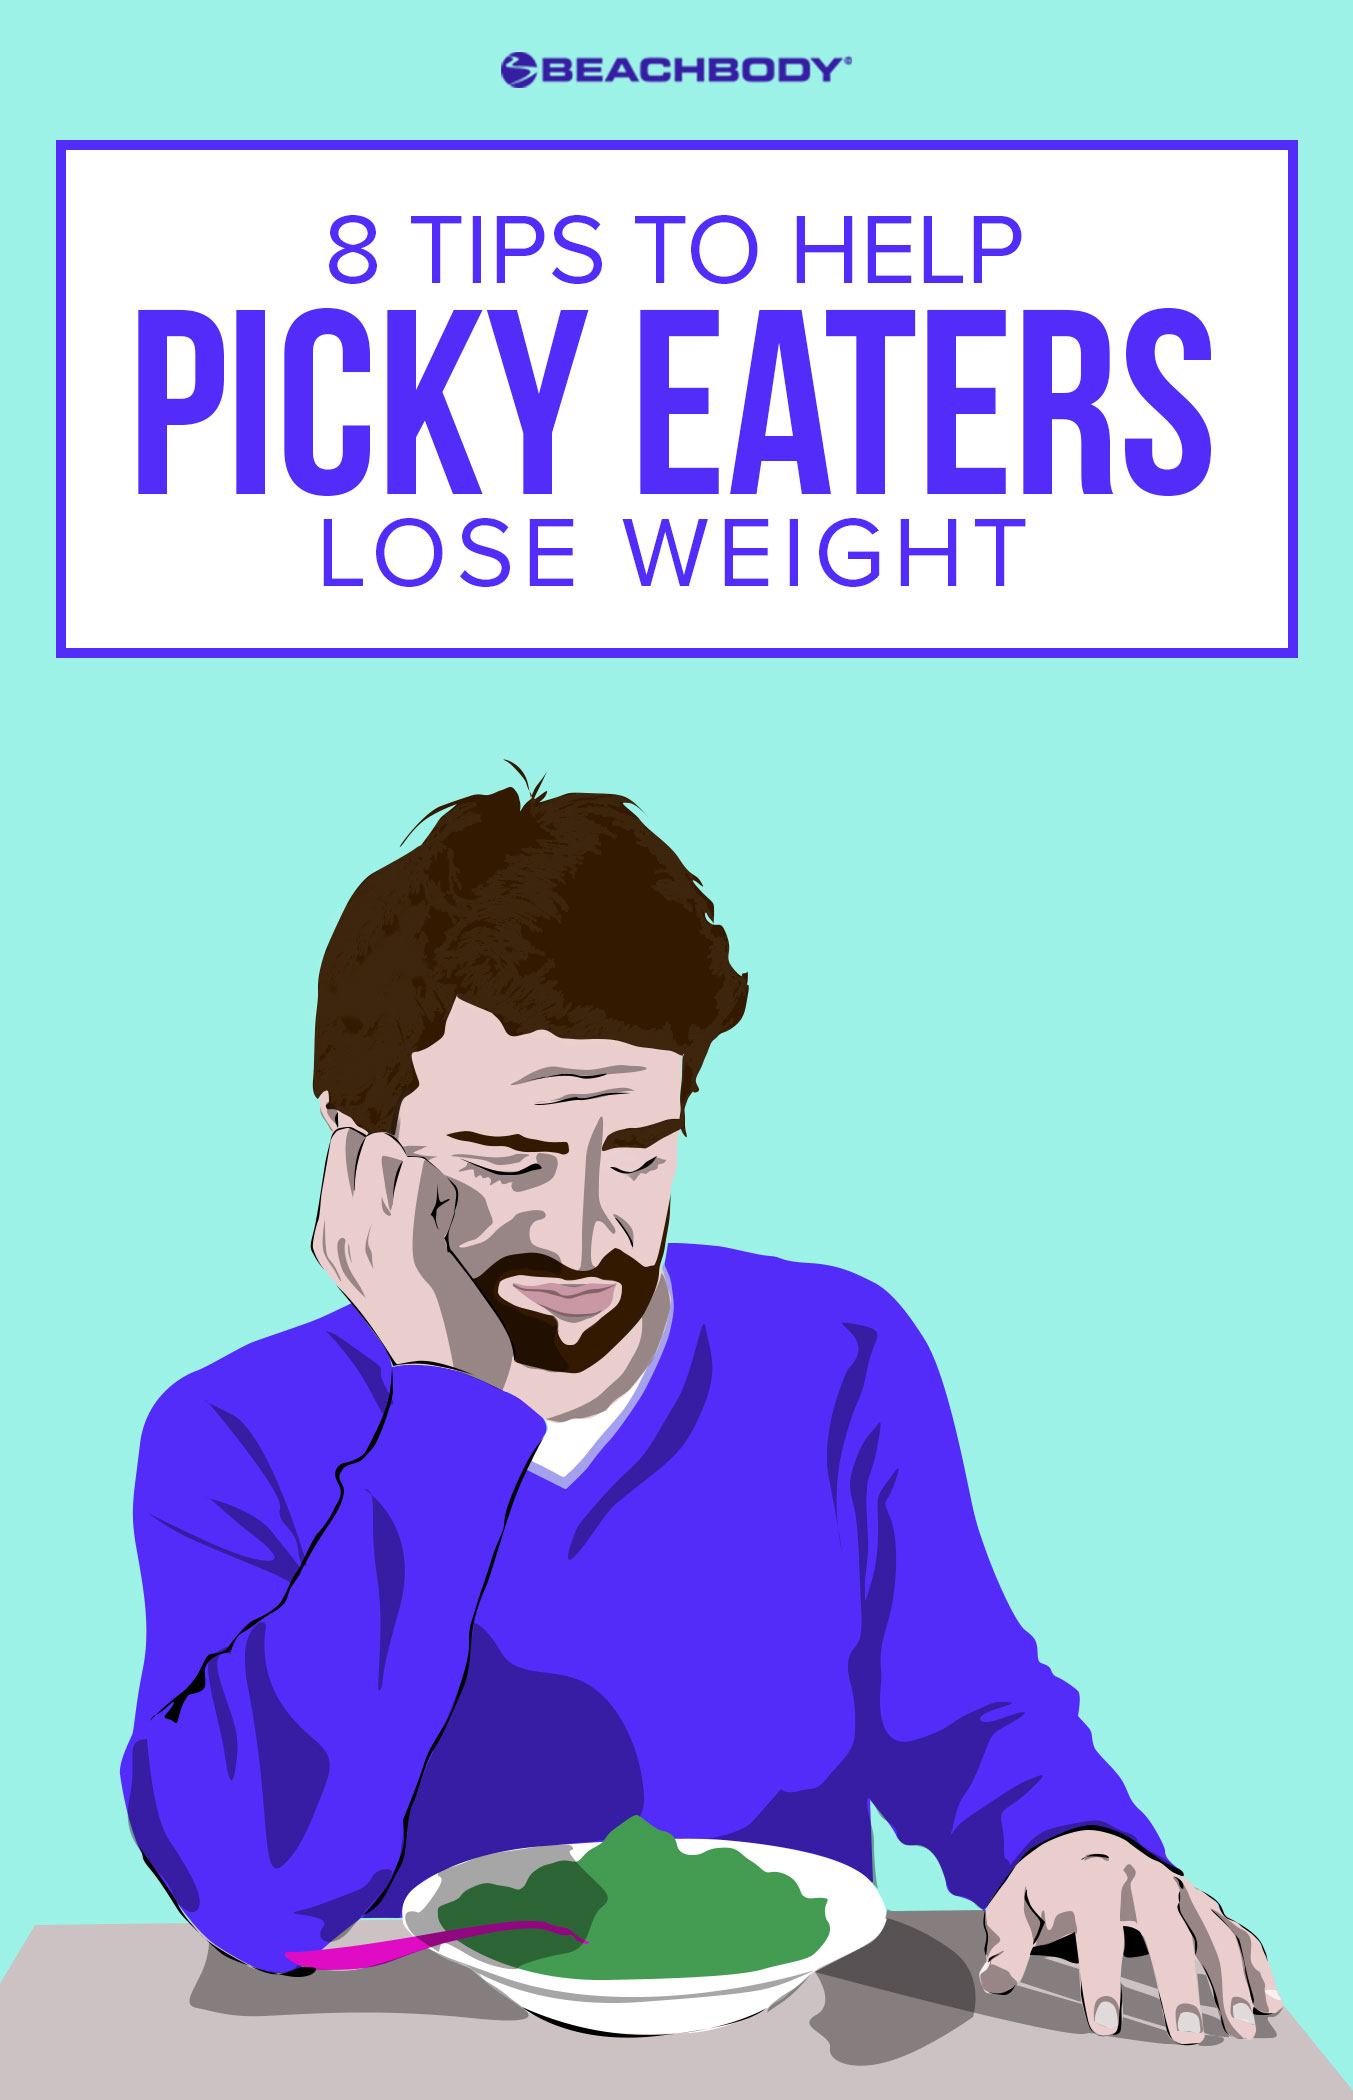 Picky eaters can lose weight too! If you're struggling with how to lose weight because you don't like a lot of healthy food options, check out these tips to help you succeed with your health and fitness goals.